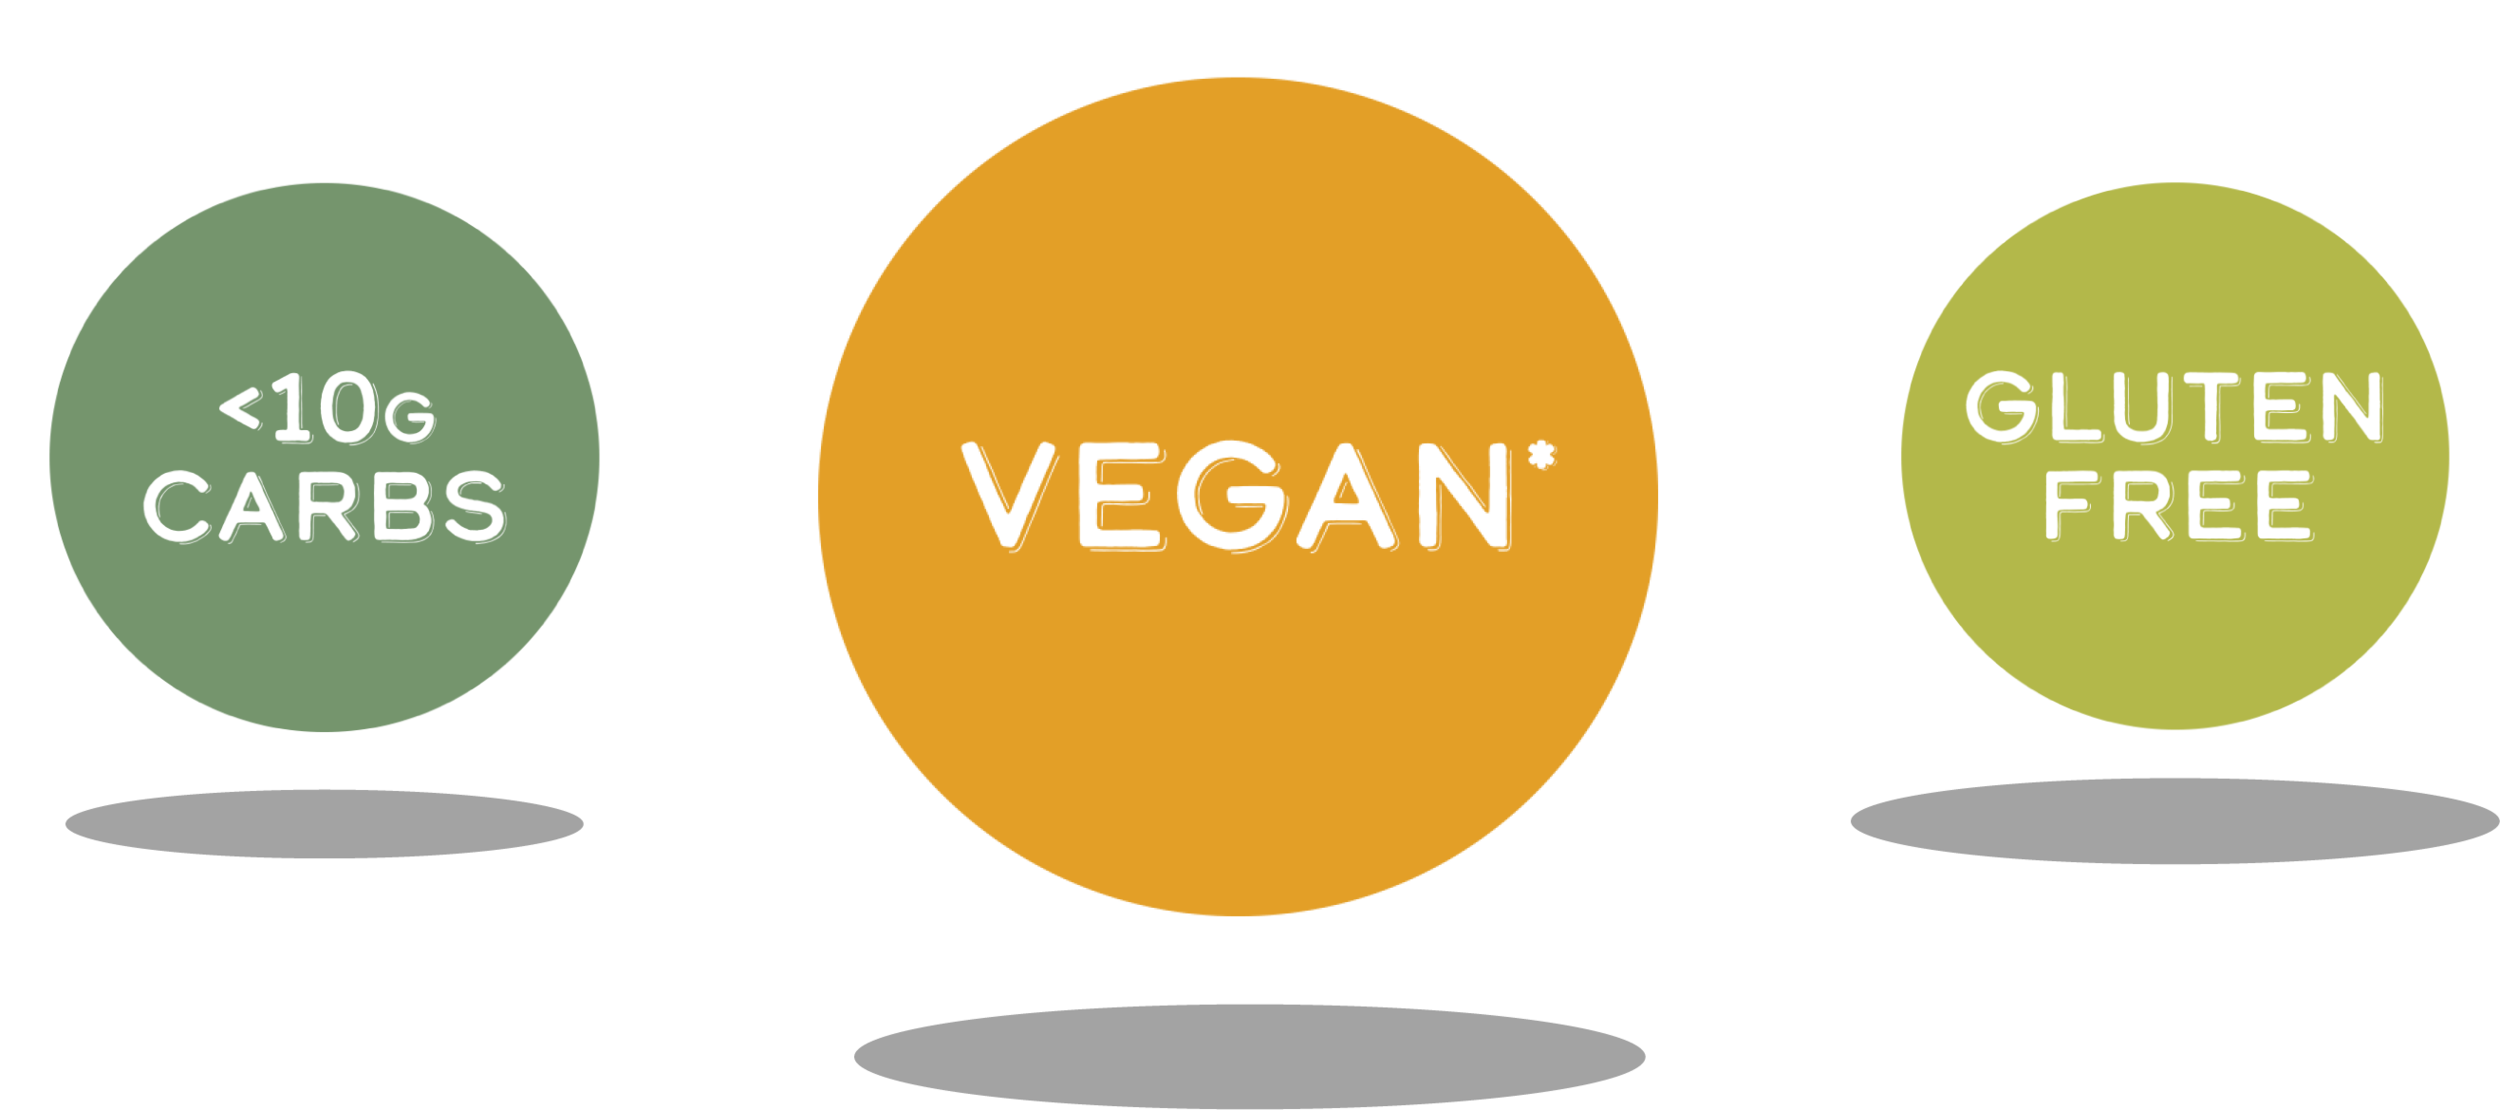 It is our goal to have products that exclude all forms of exploitation of, and cruelty to, animals for food, clothing, or any other purpose. With the exception of 3 of our sauces that contain honey, our line of products fall within the definition of veganism.